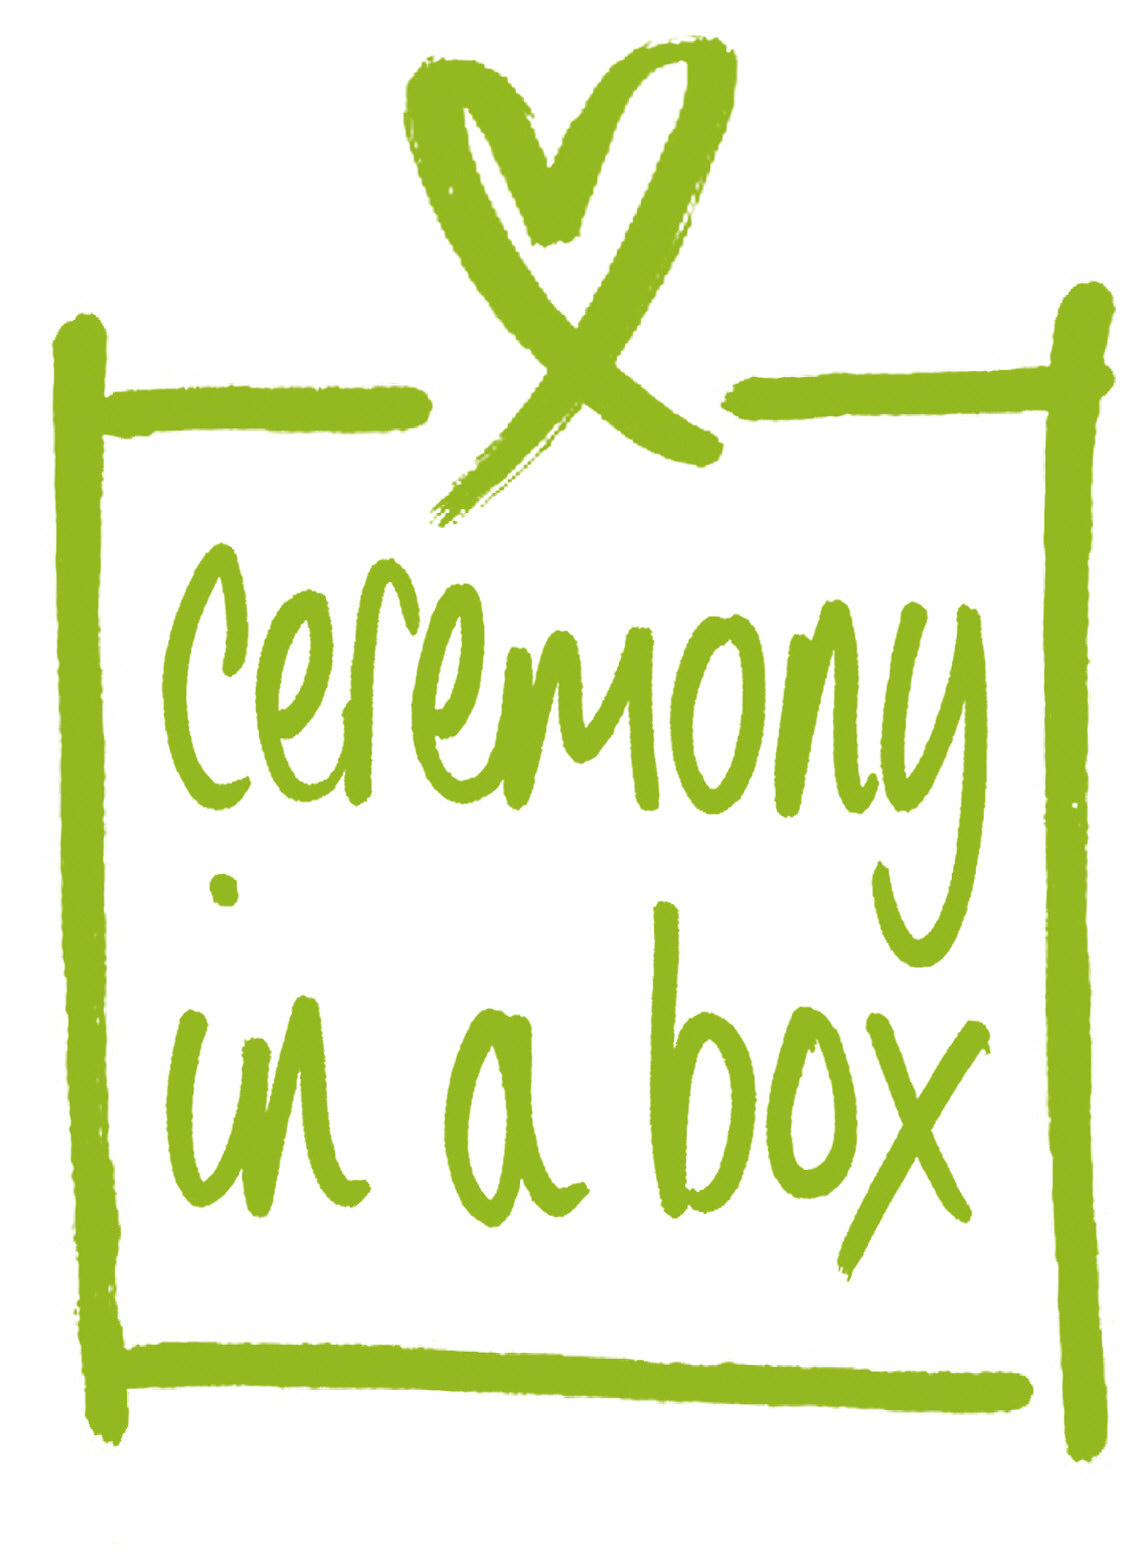 Ceremony in a box